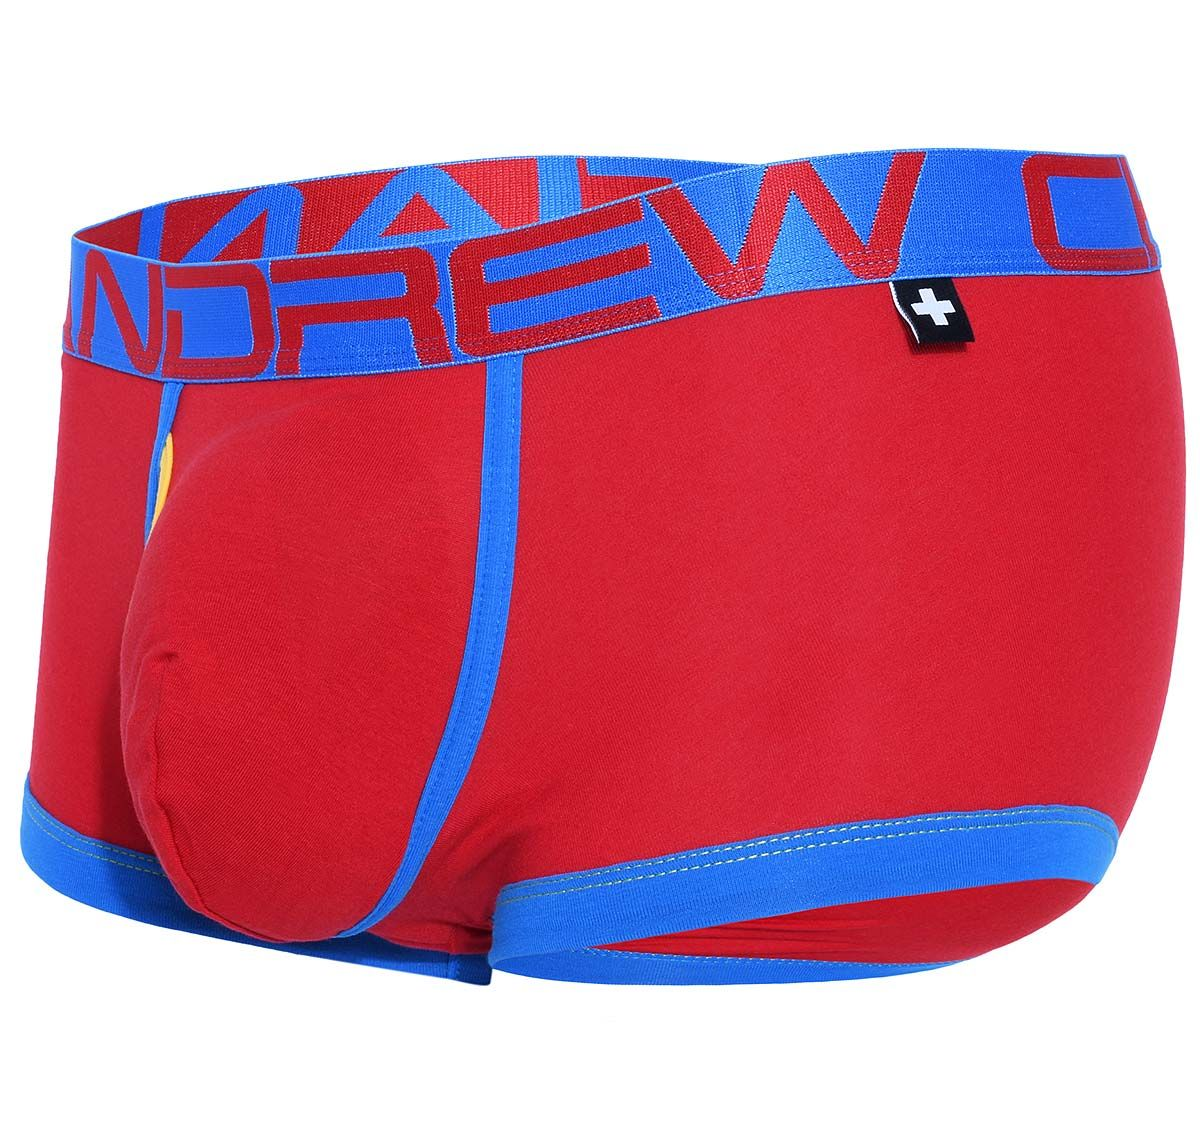 Andrew Christian Boxer FLY Tagless BOXER w/ Almost Naked 91218, rouge